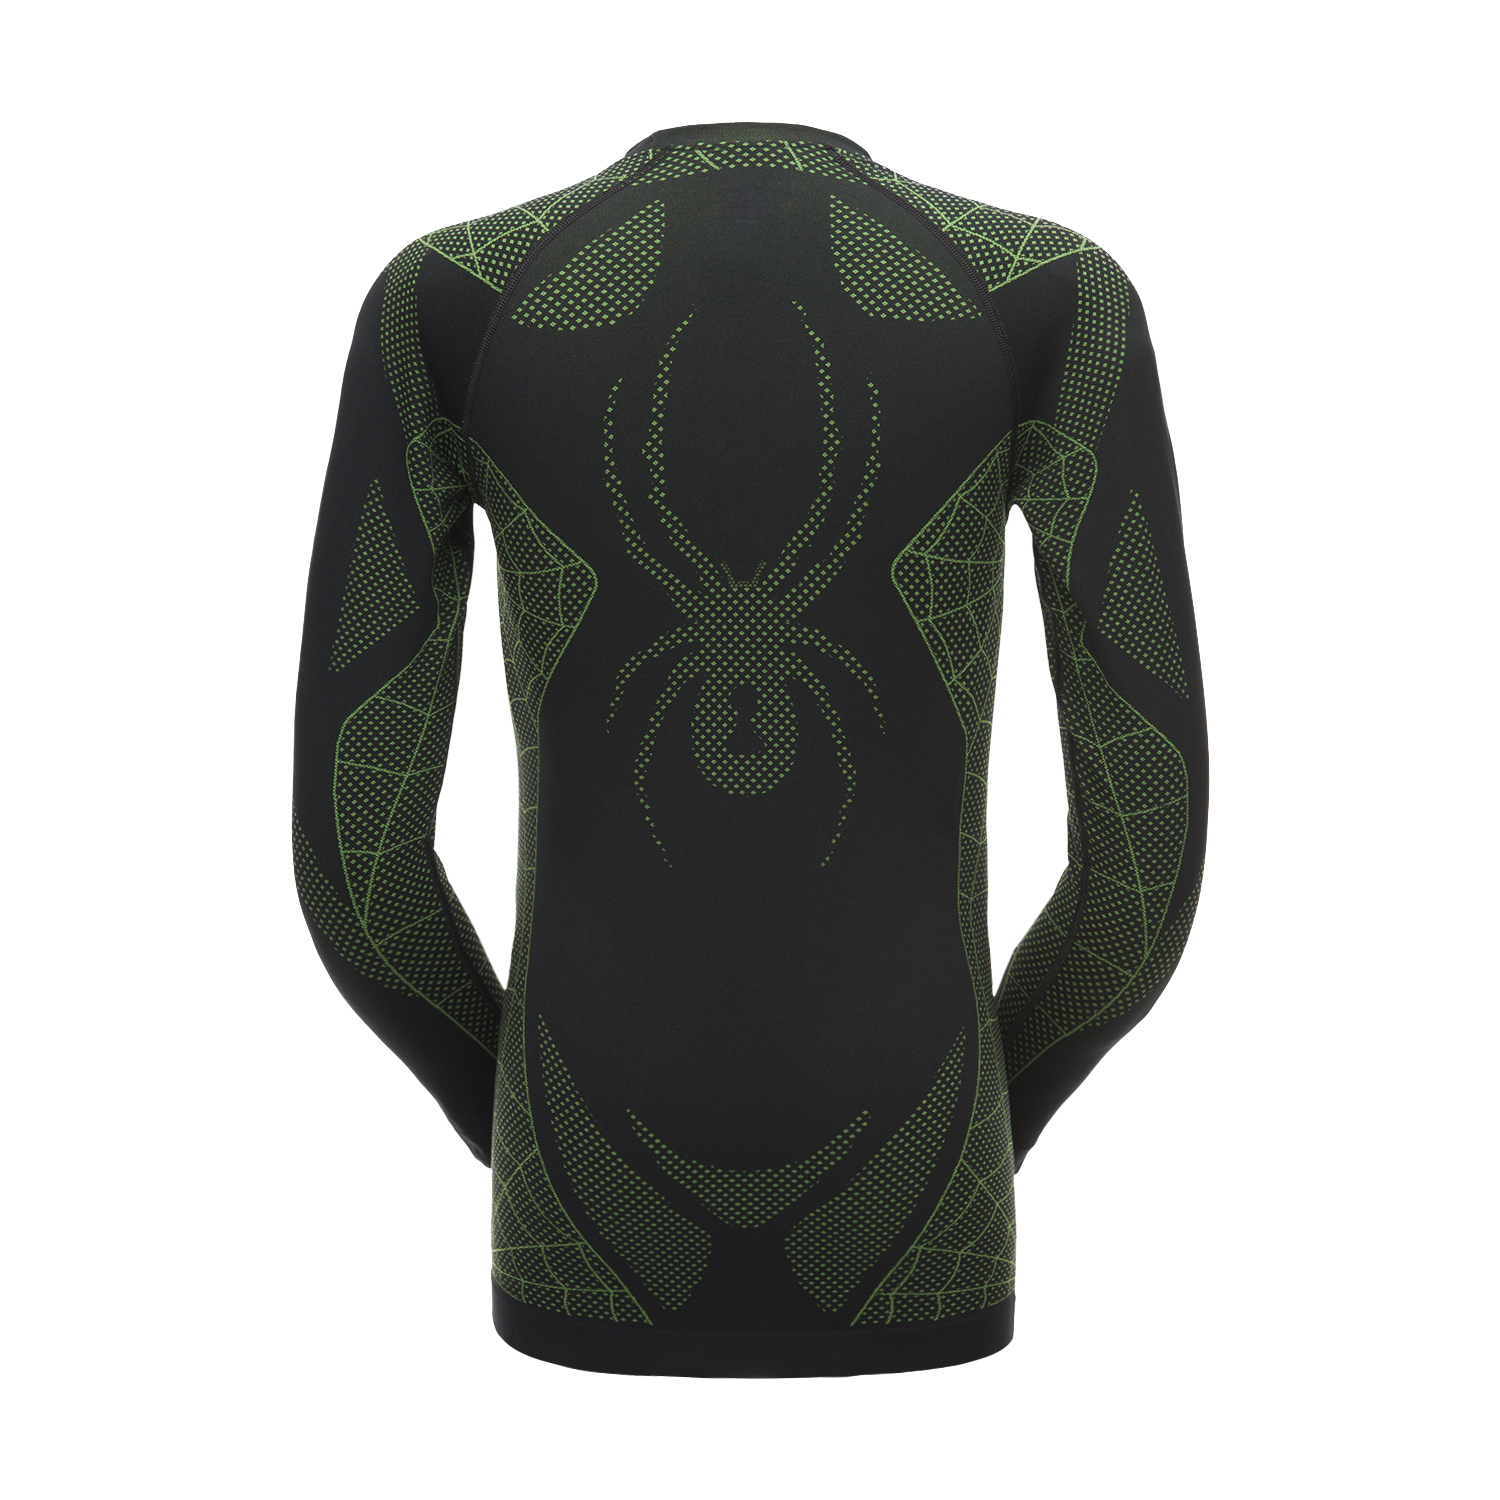 Spyder Captain Baselayer Top Herren Funktionsshirt – Bild 2